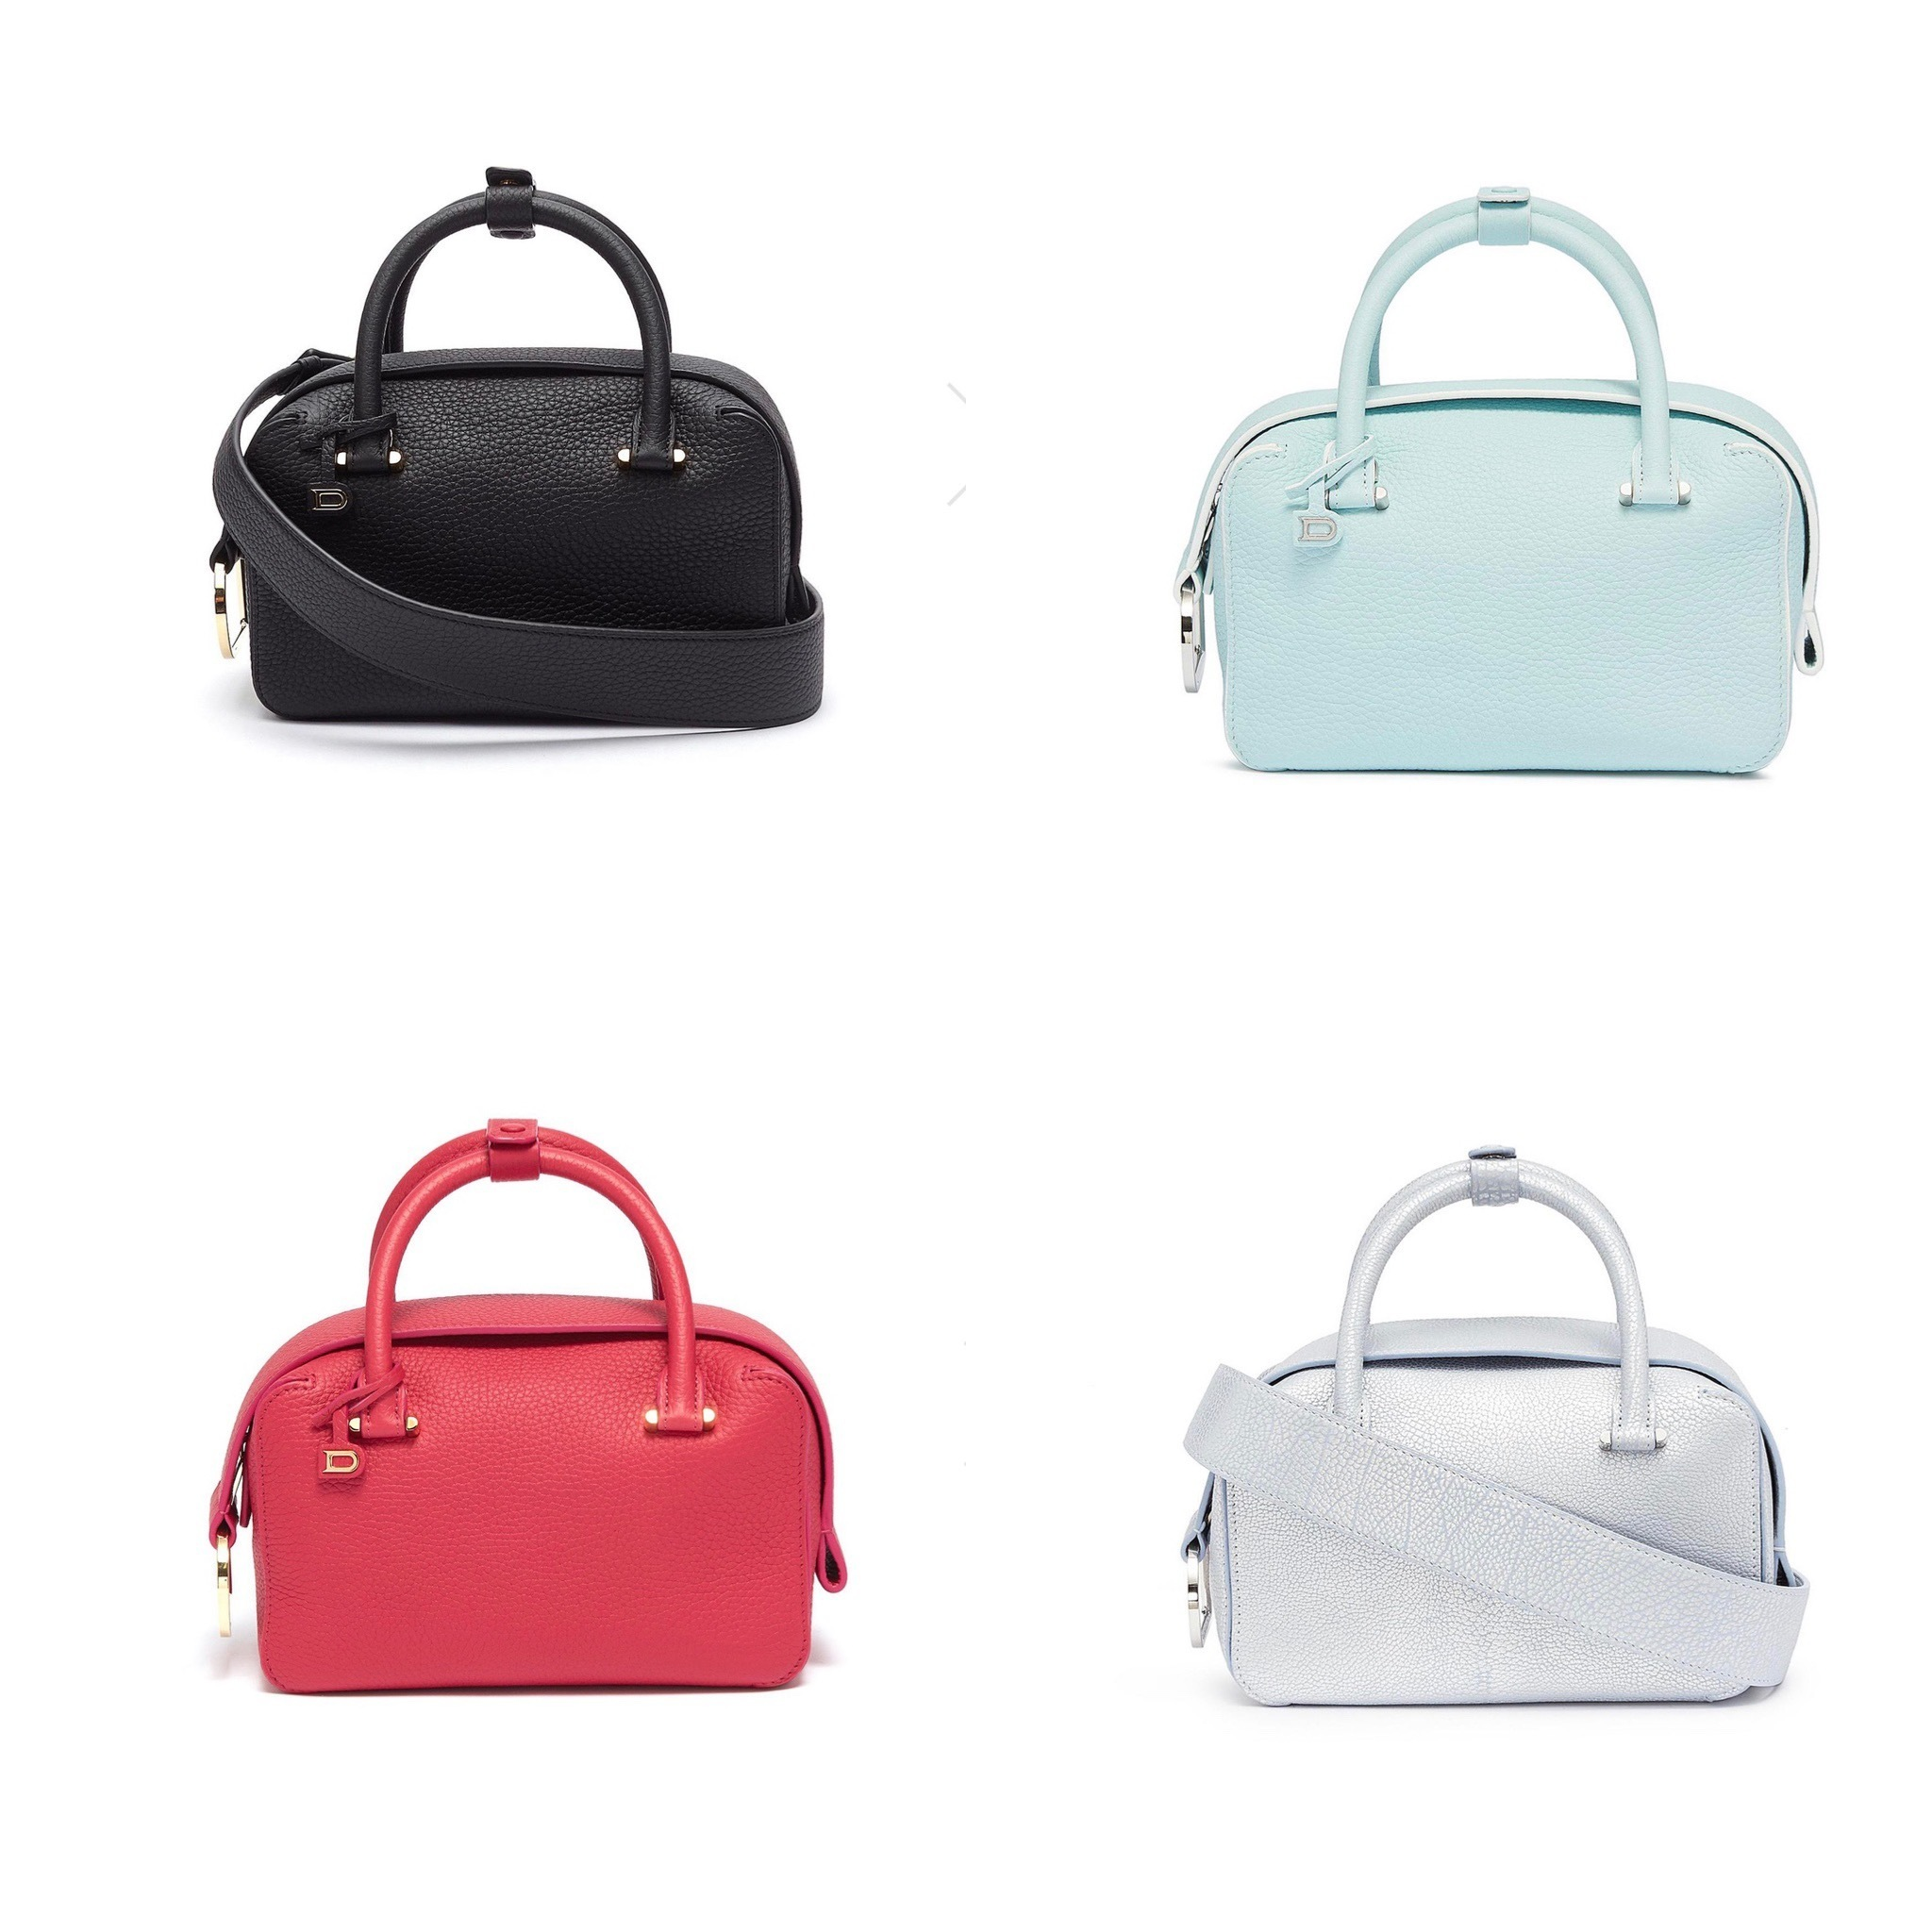 Delvaux Handbags By Chaperry Ma